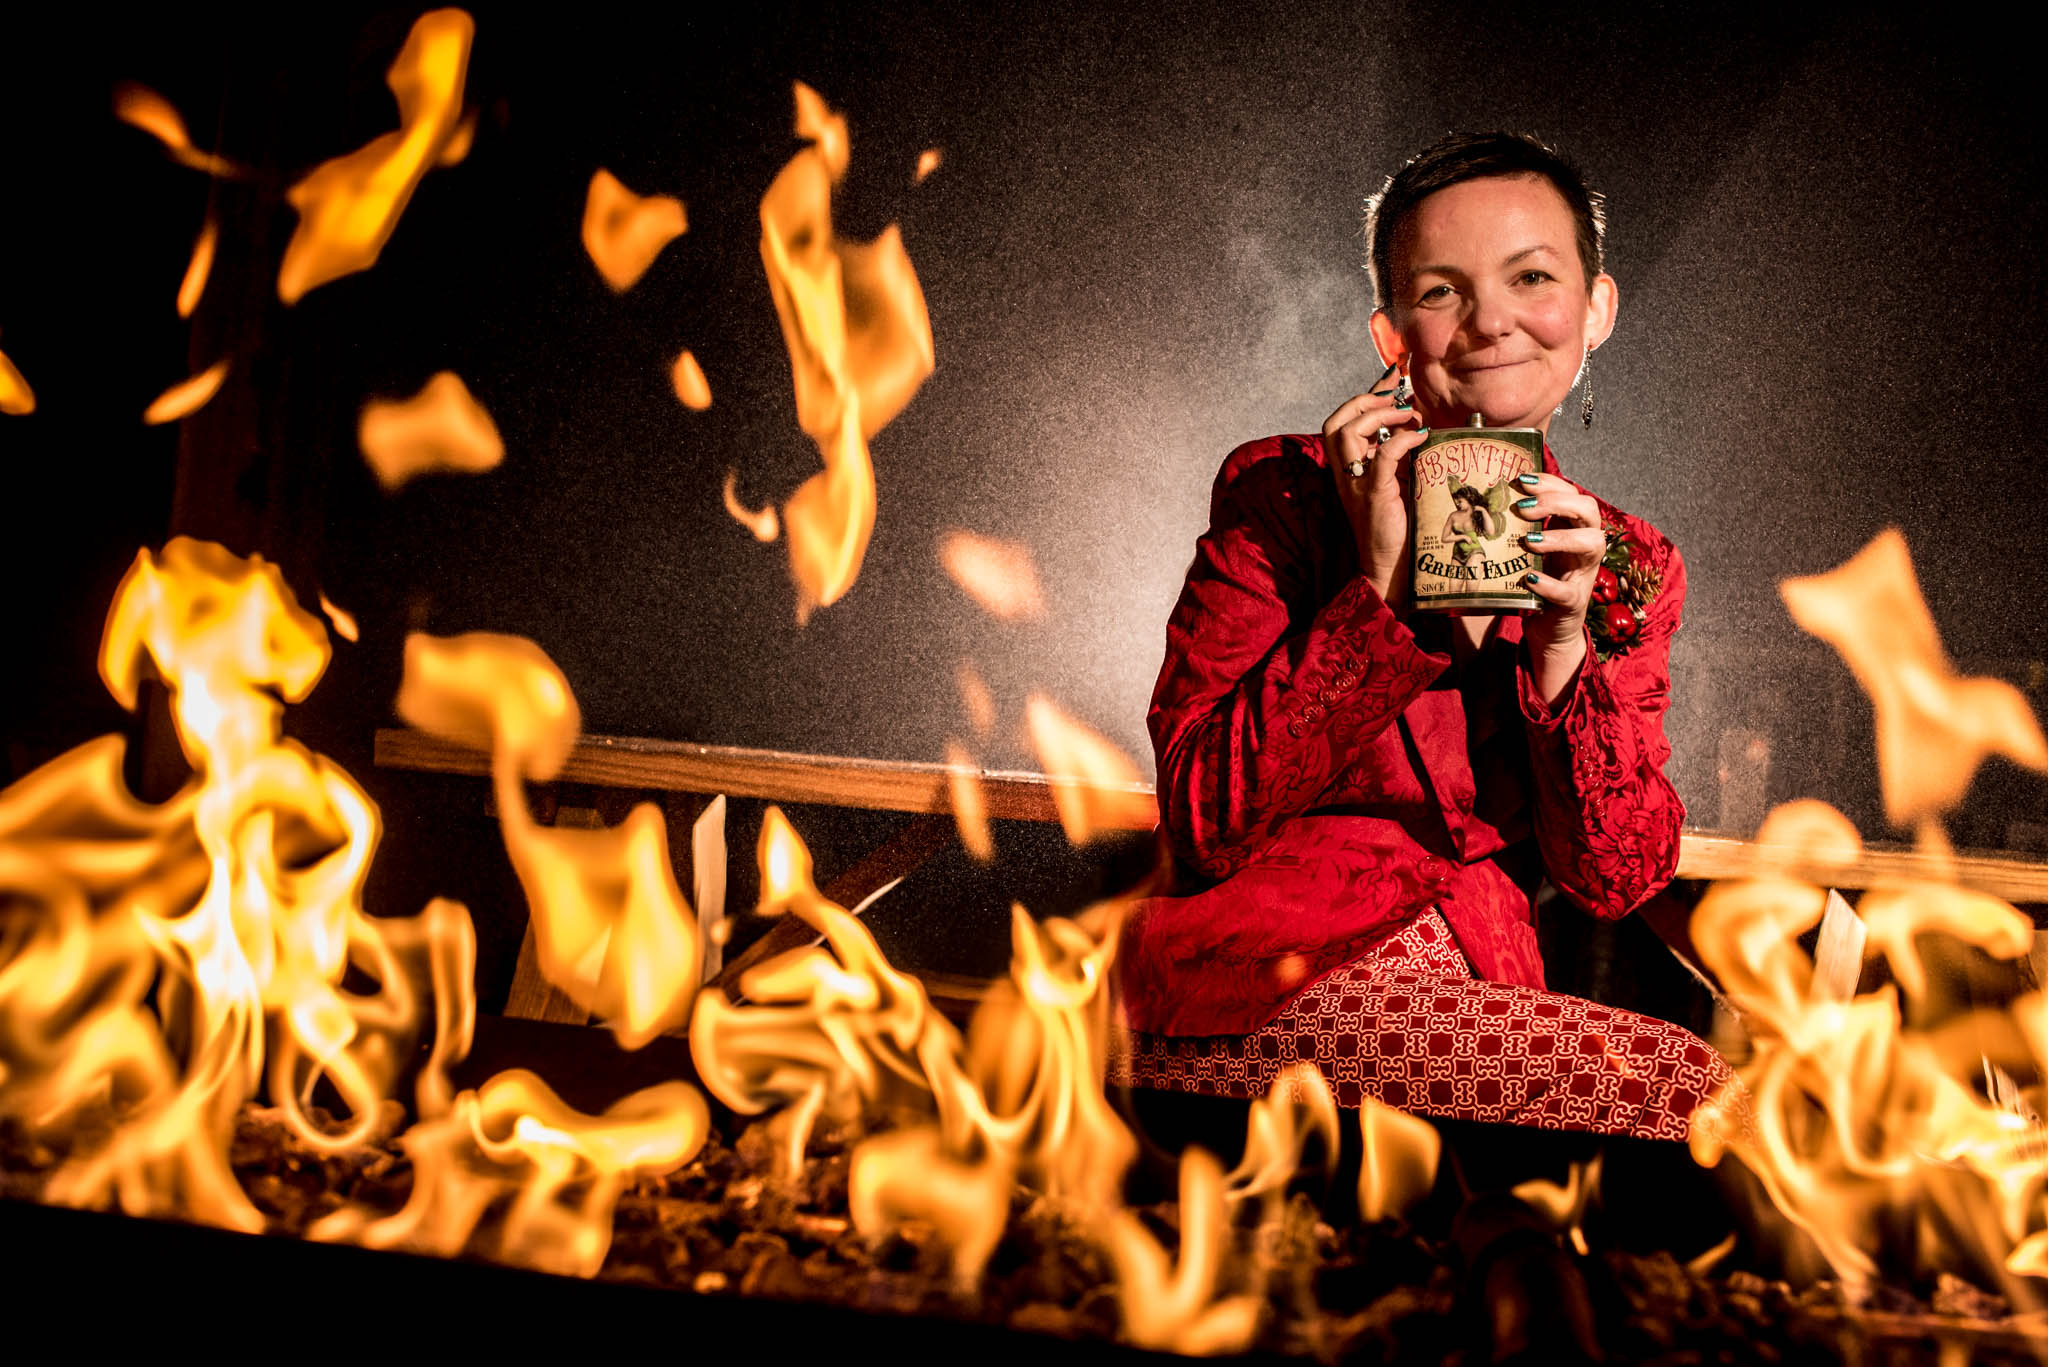 Creative portrait of woman drinking whiskey in front of the fire